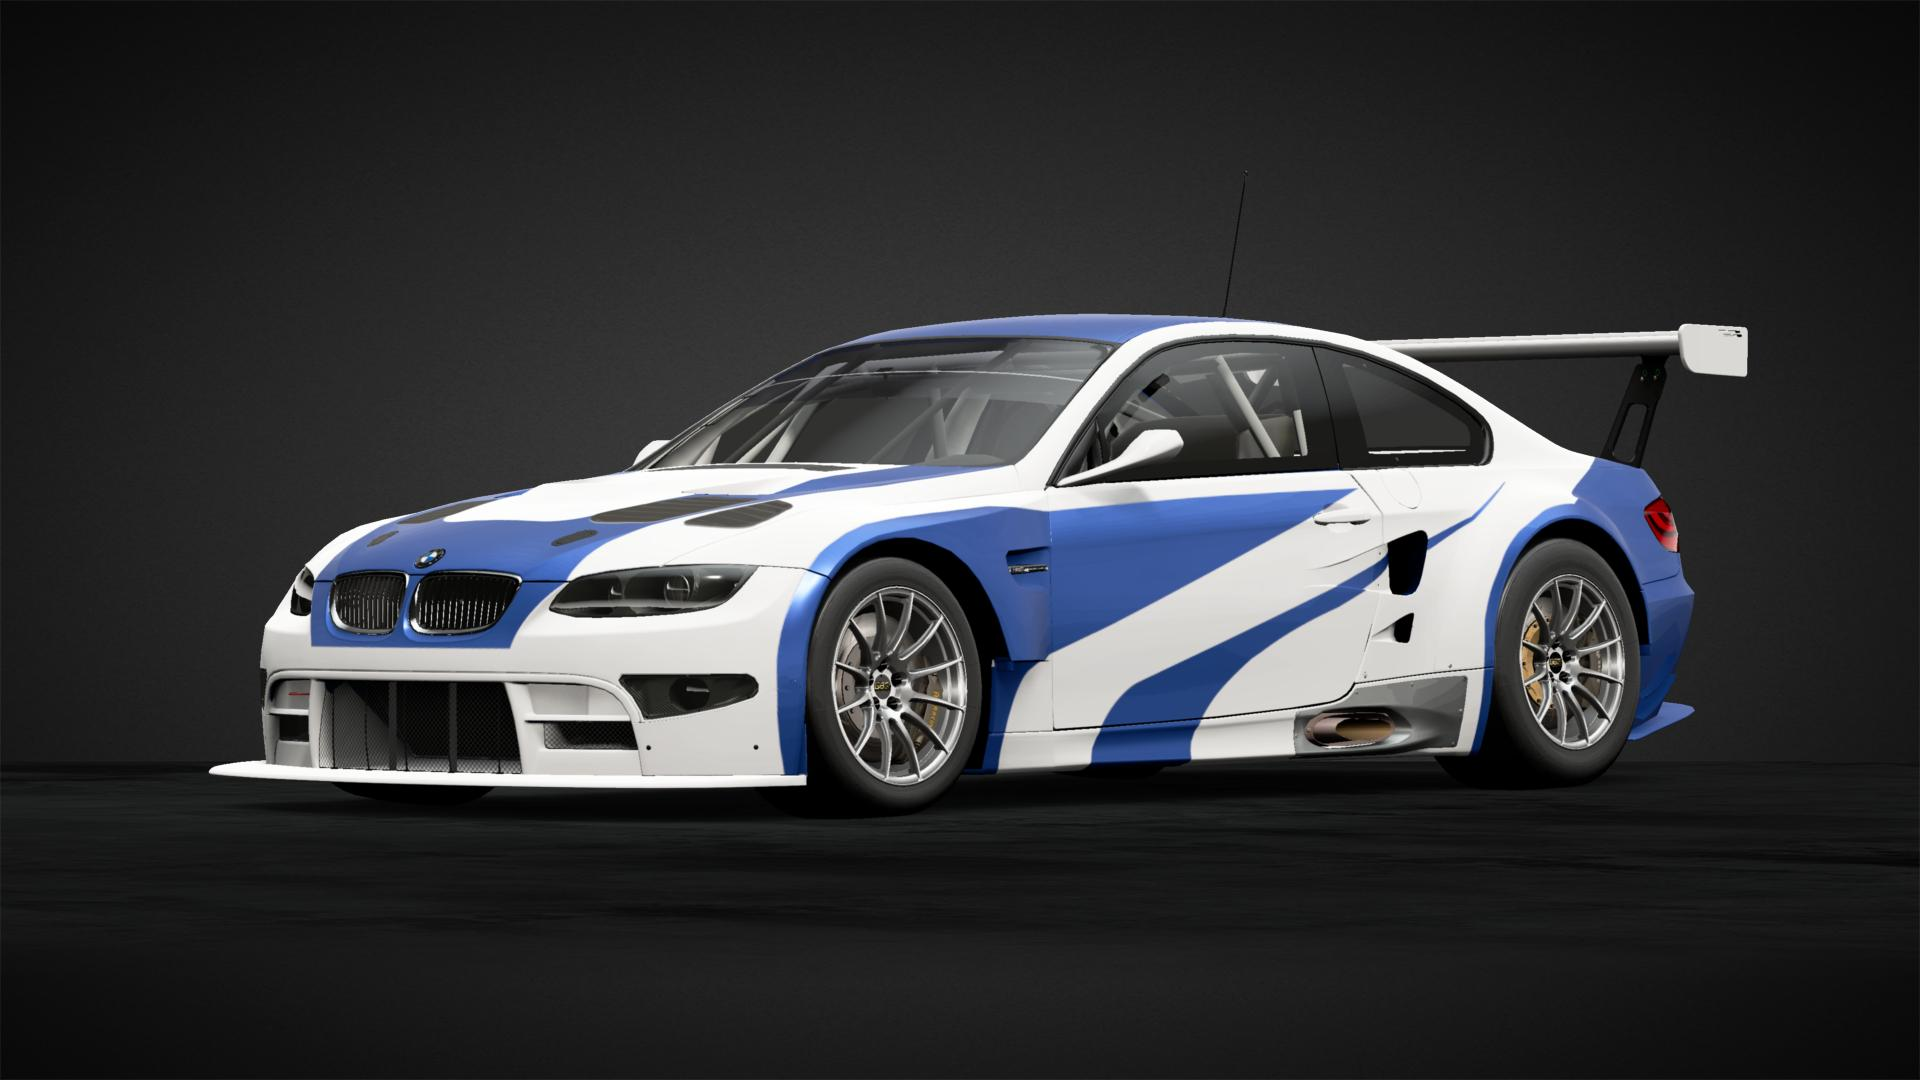 Nfs Most Wanted Bmw M3 Gtr Car Livery By Atheistsw Community